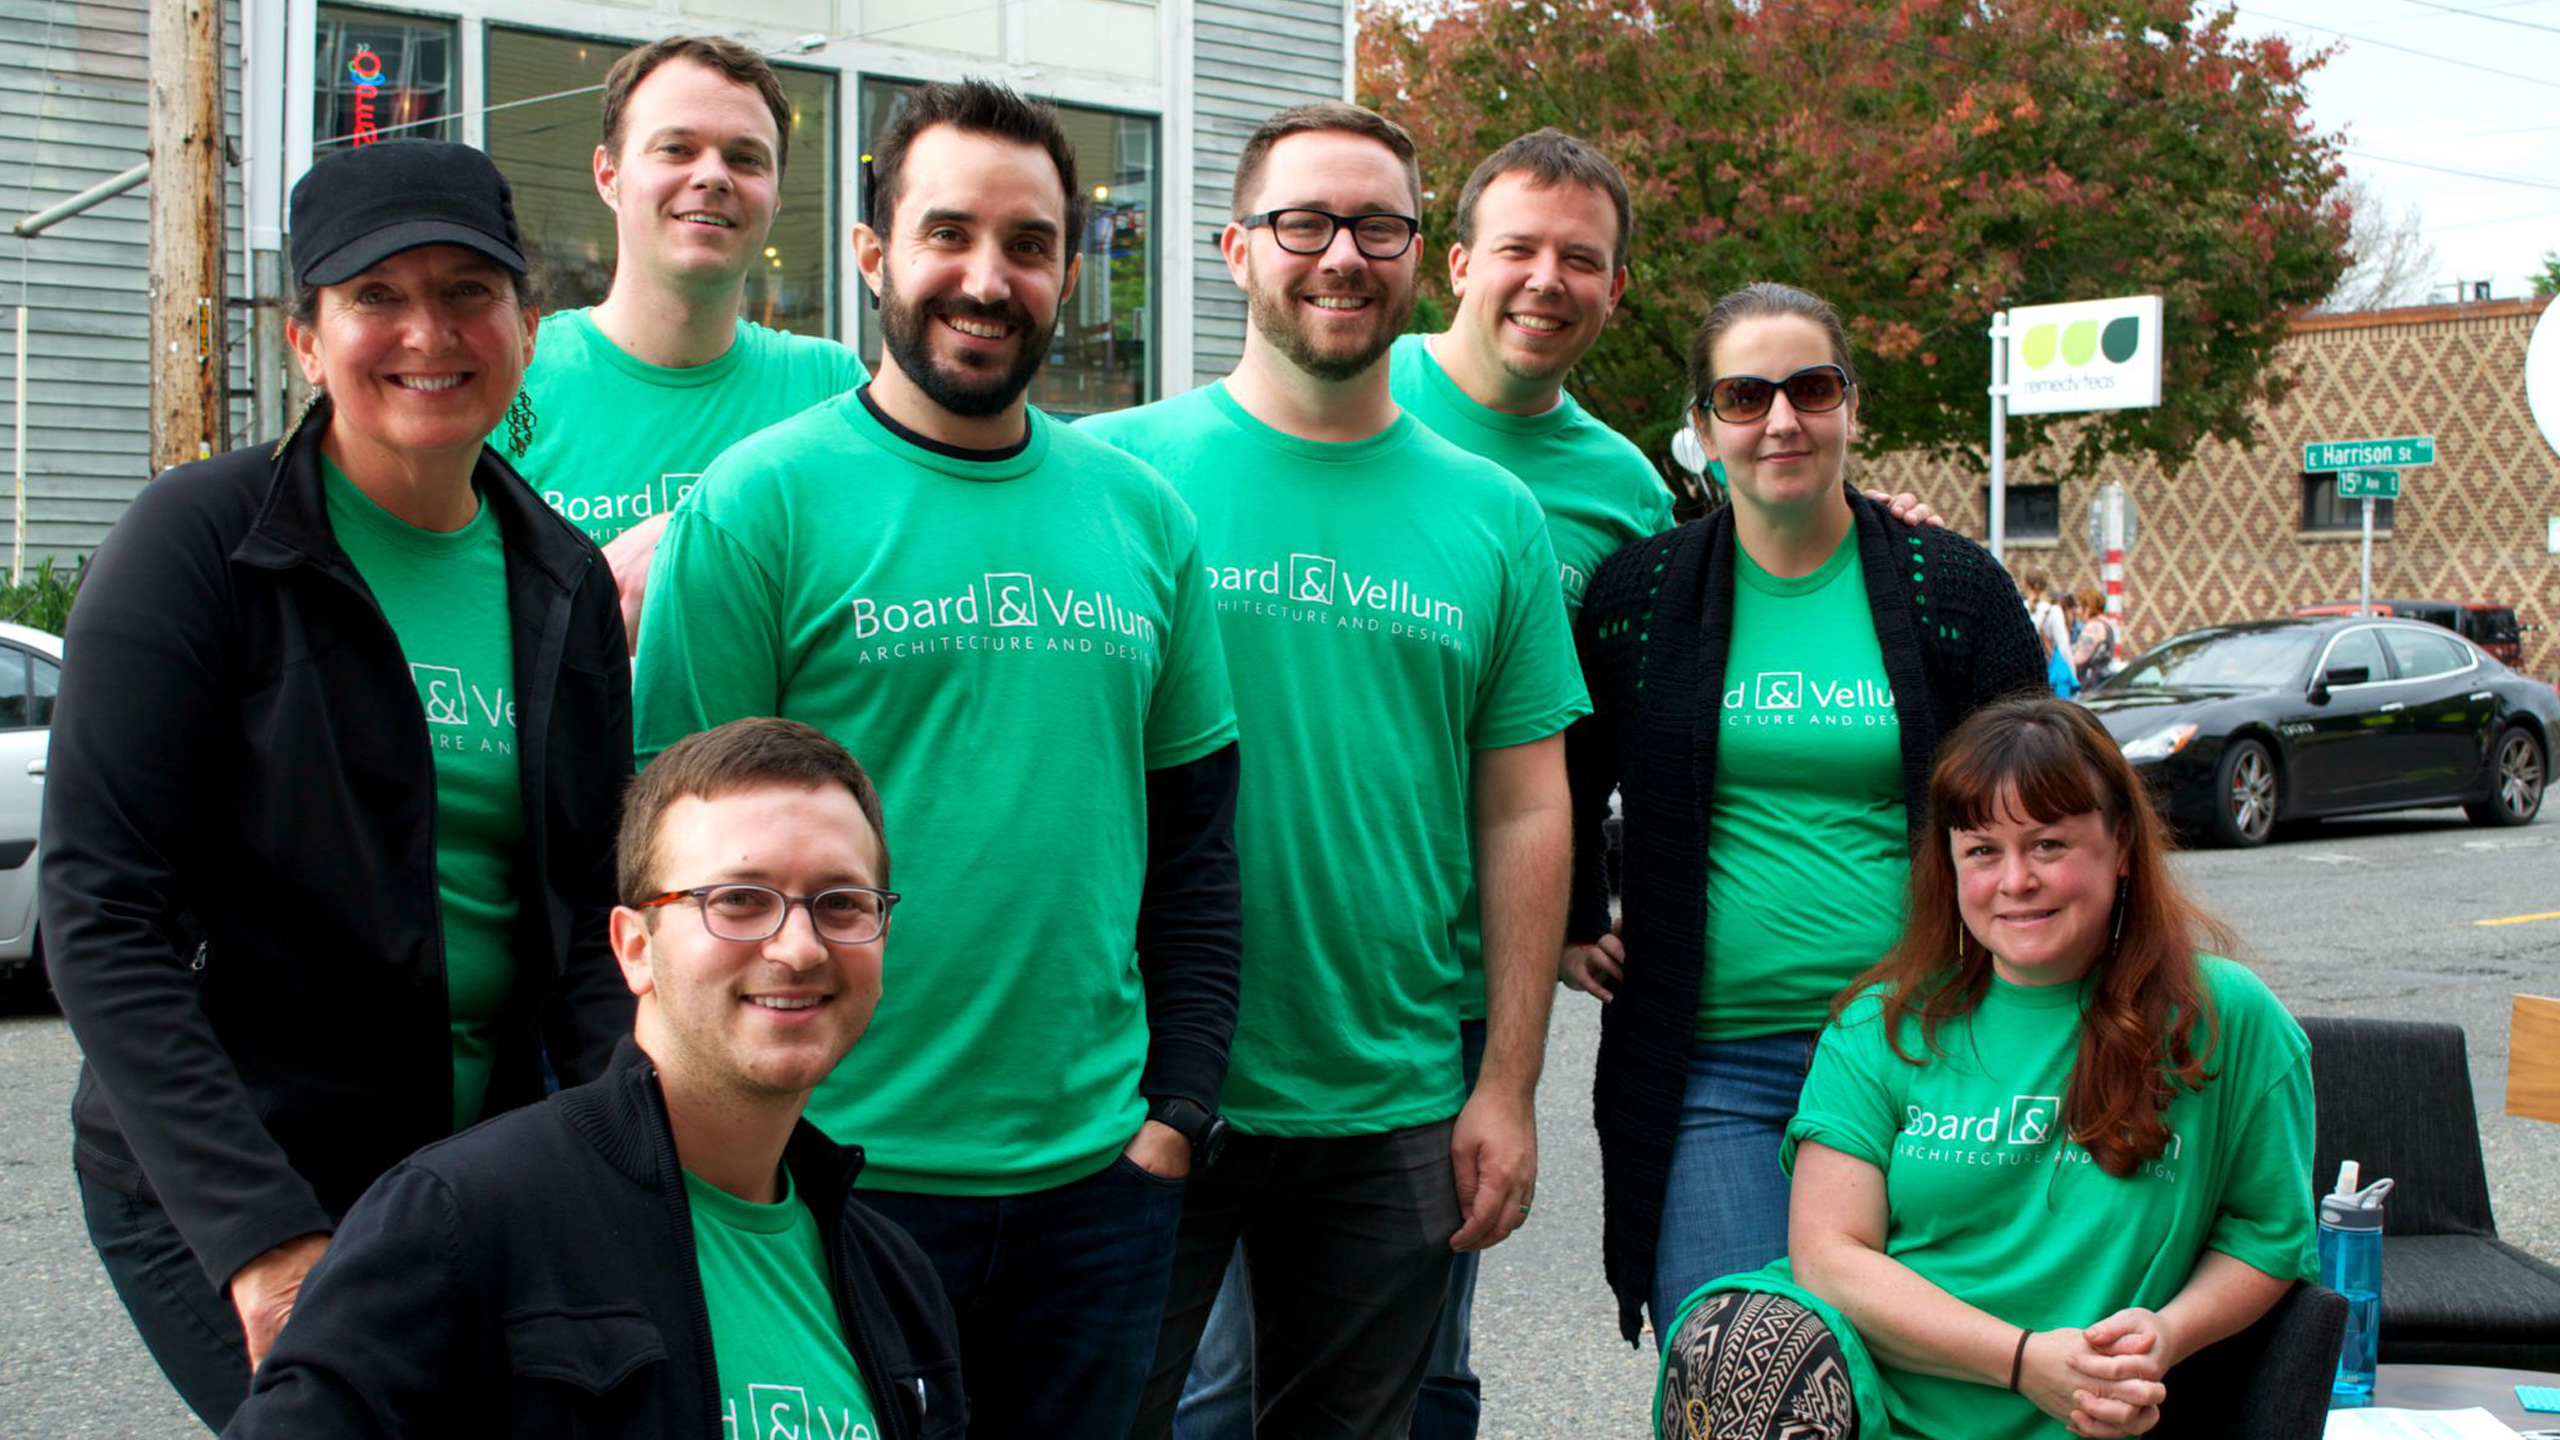 How Architects Can Be Model Citizens: The B&V Team at the Street Fair - Cropped for Featured Image